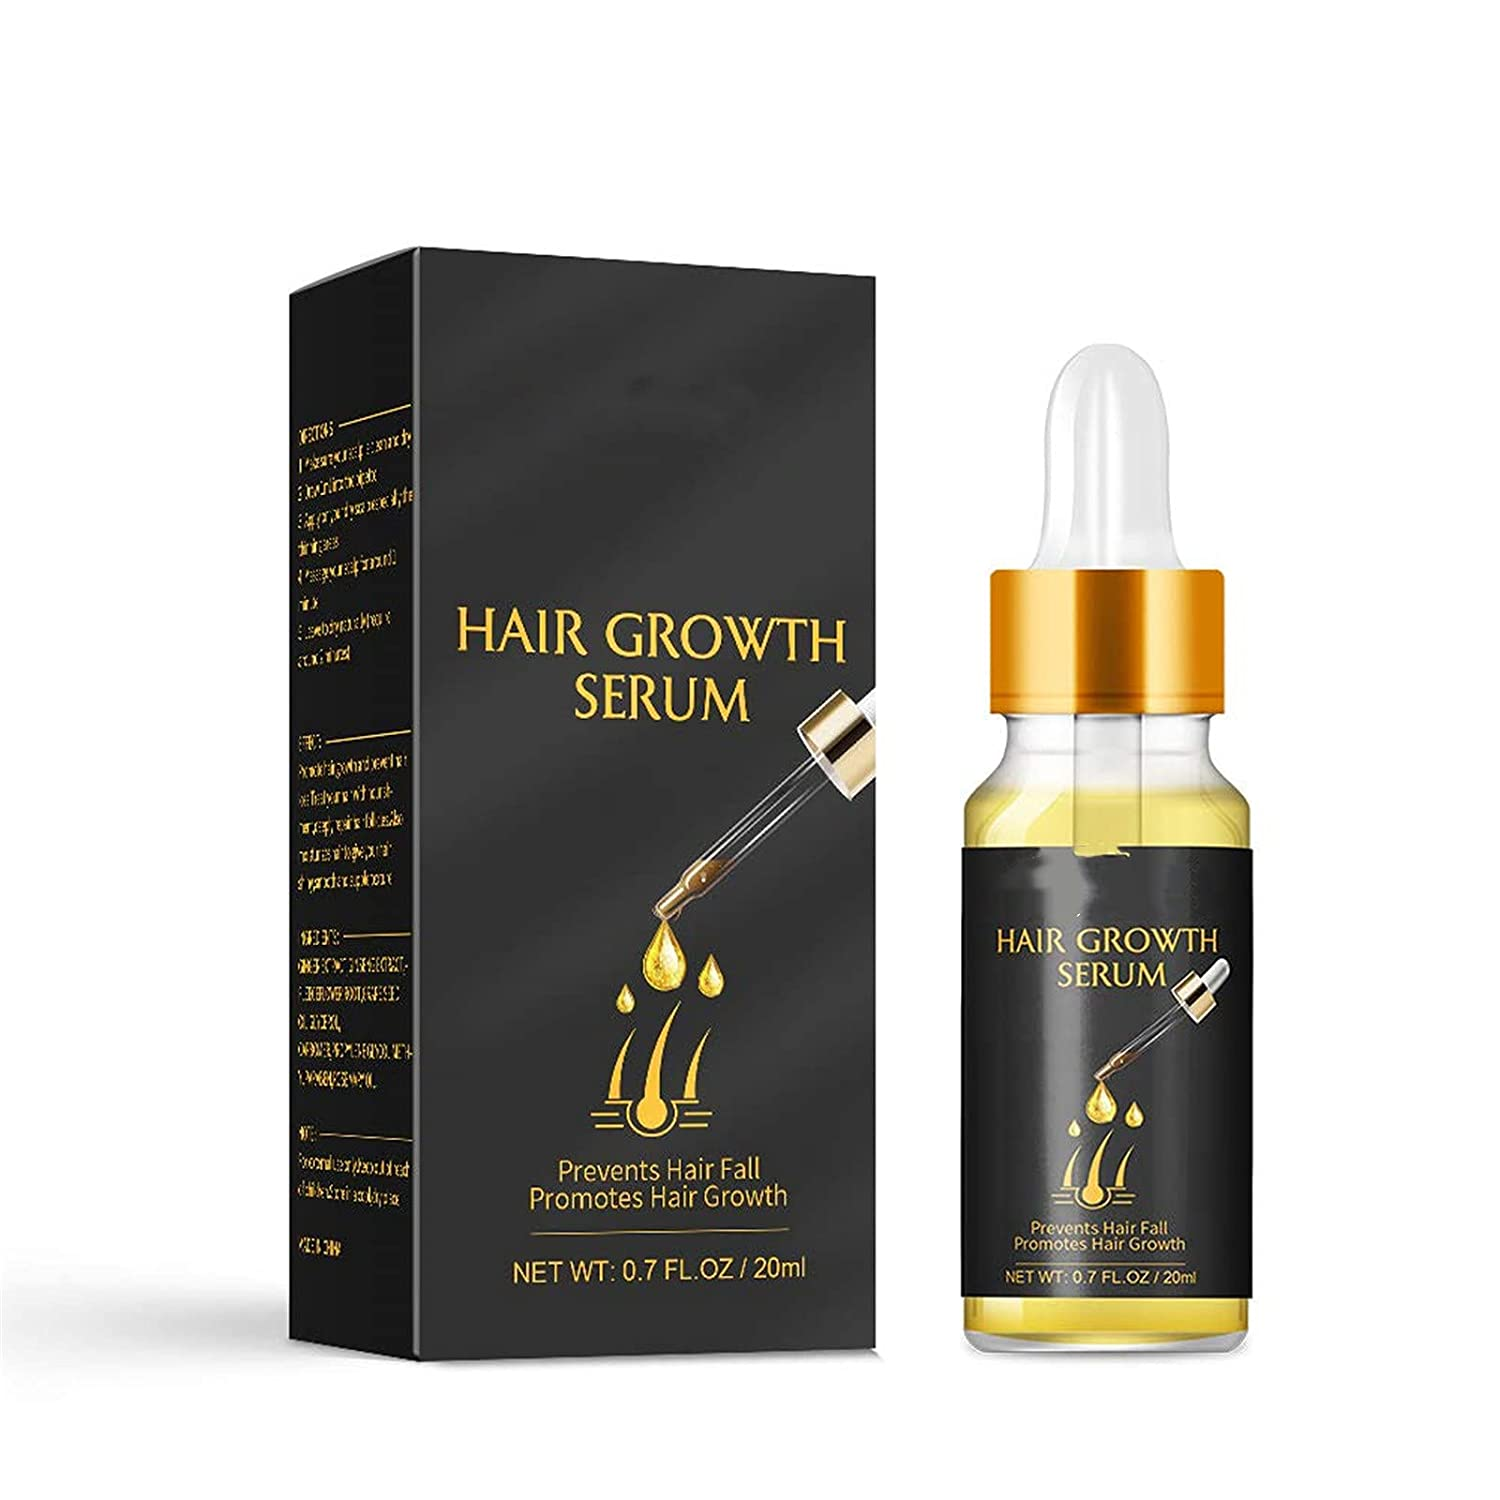 PLMIONGG Biotin Thickening Herbal Serum Growth Extr Hair 70% Max 71% OFF OFF Outlet